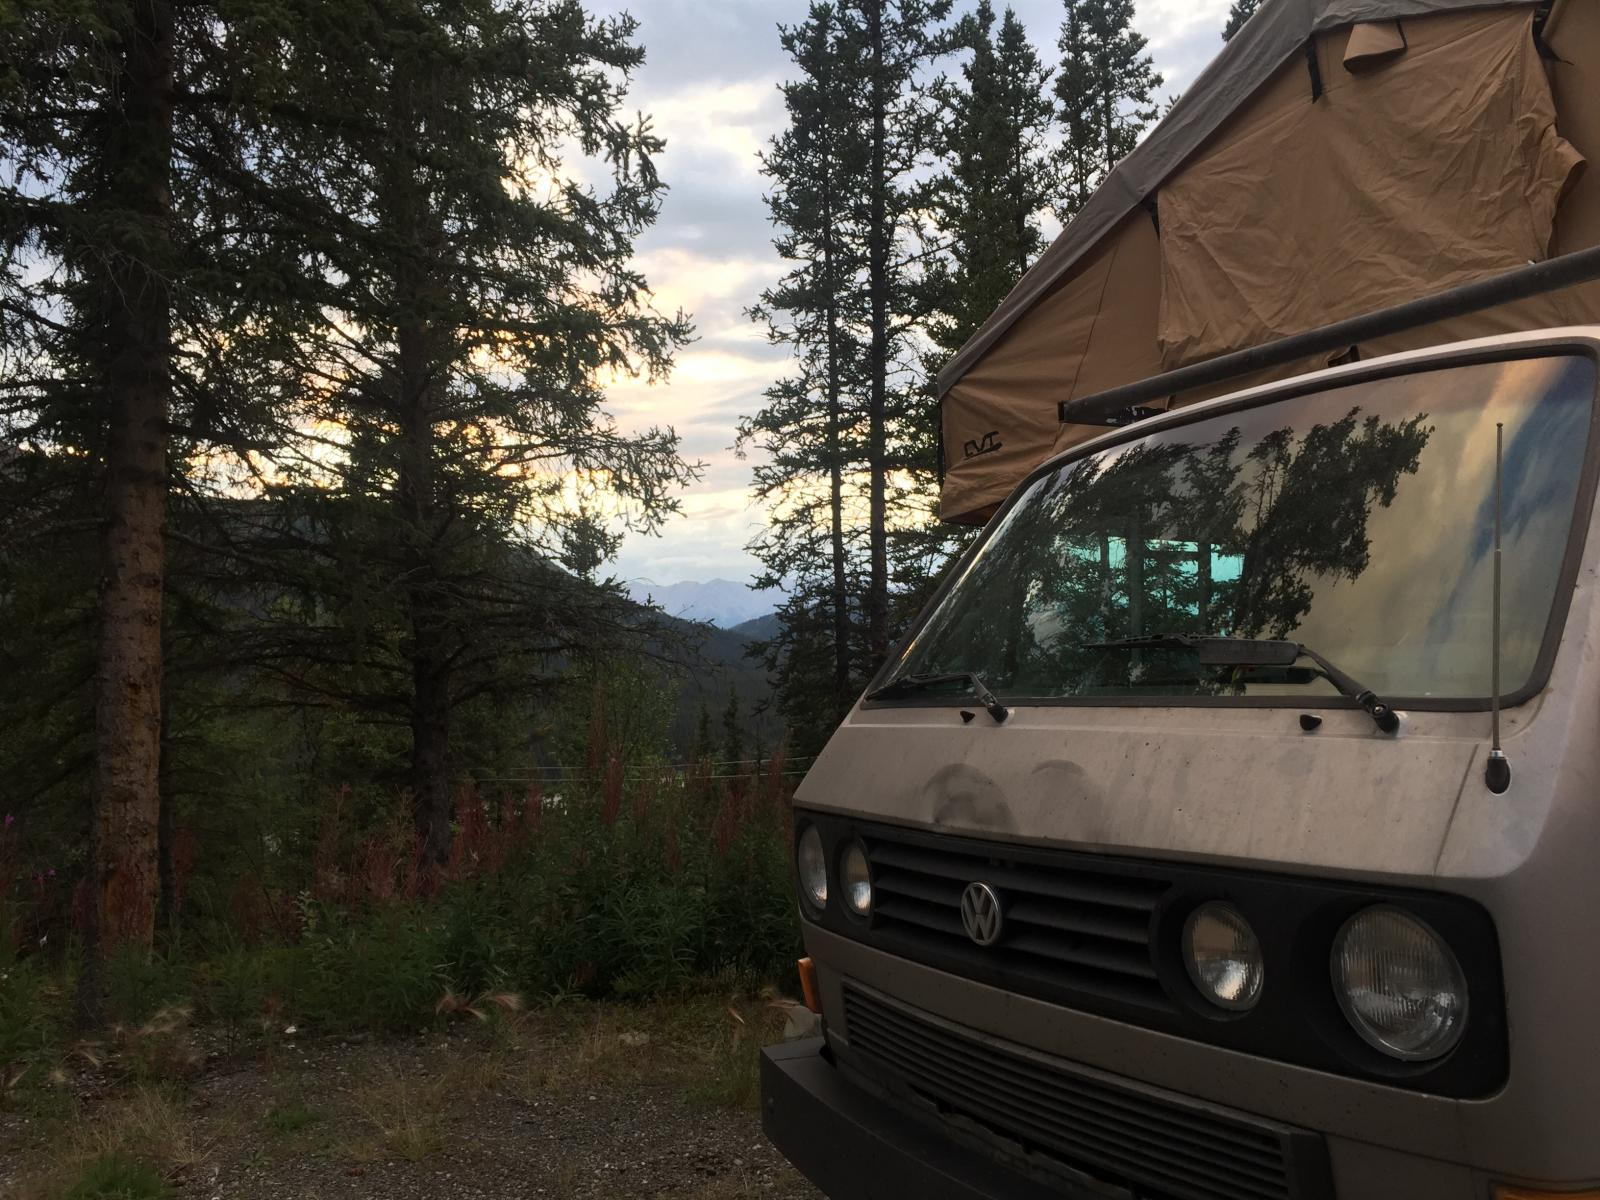 1986 Syncro with a Roof Top Tent